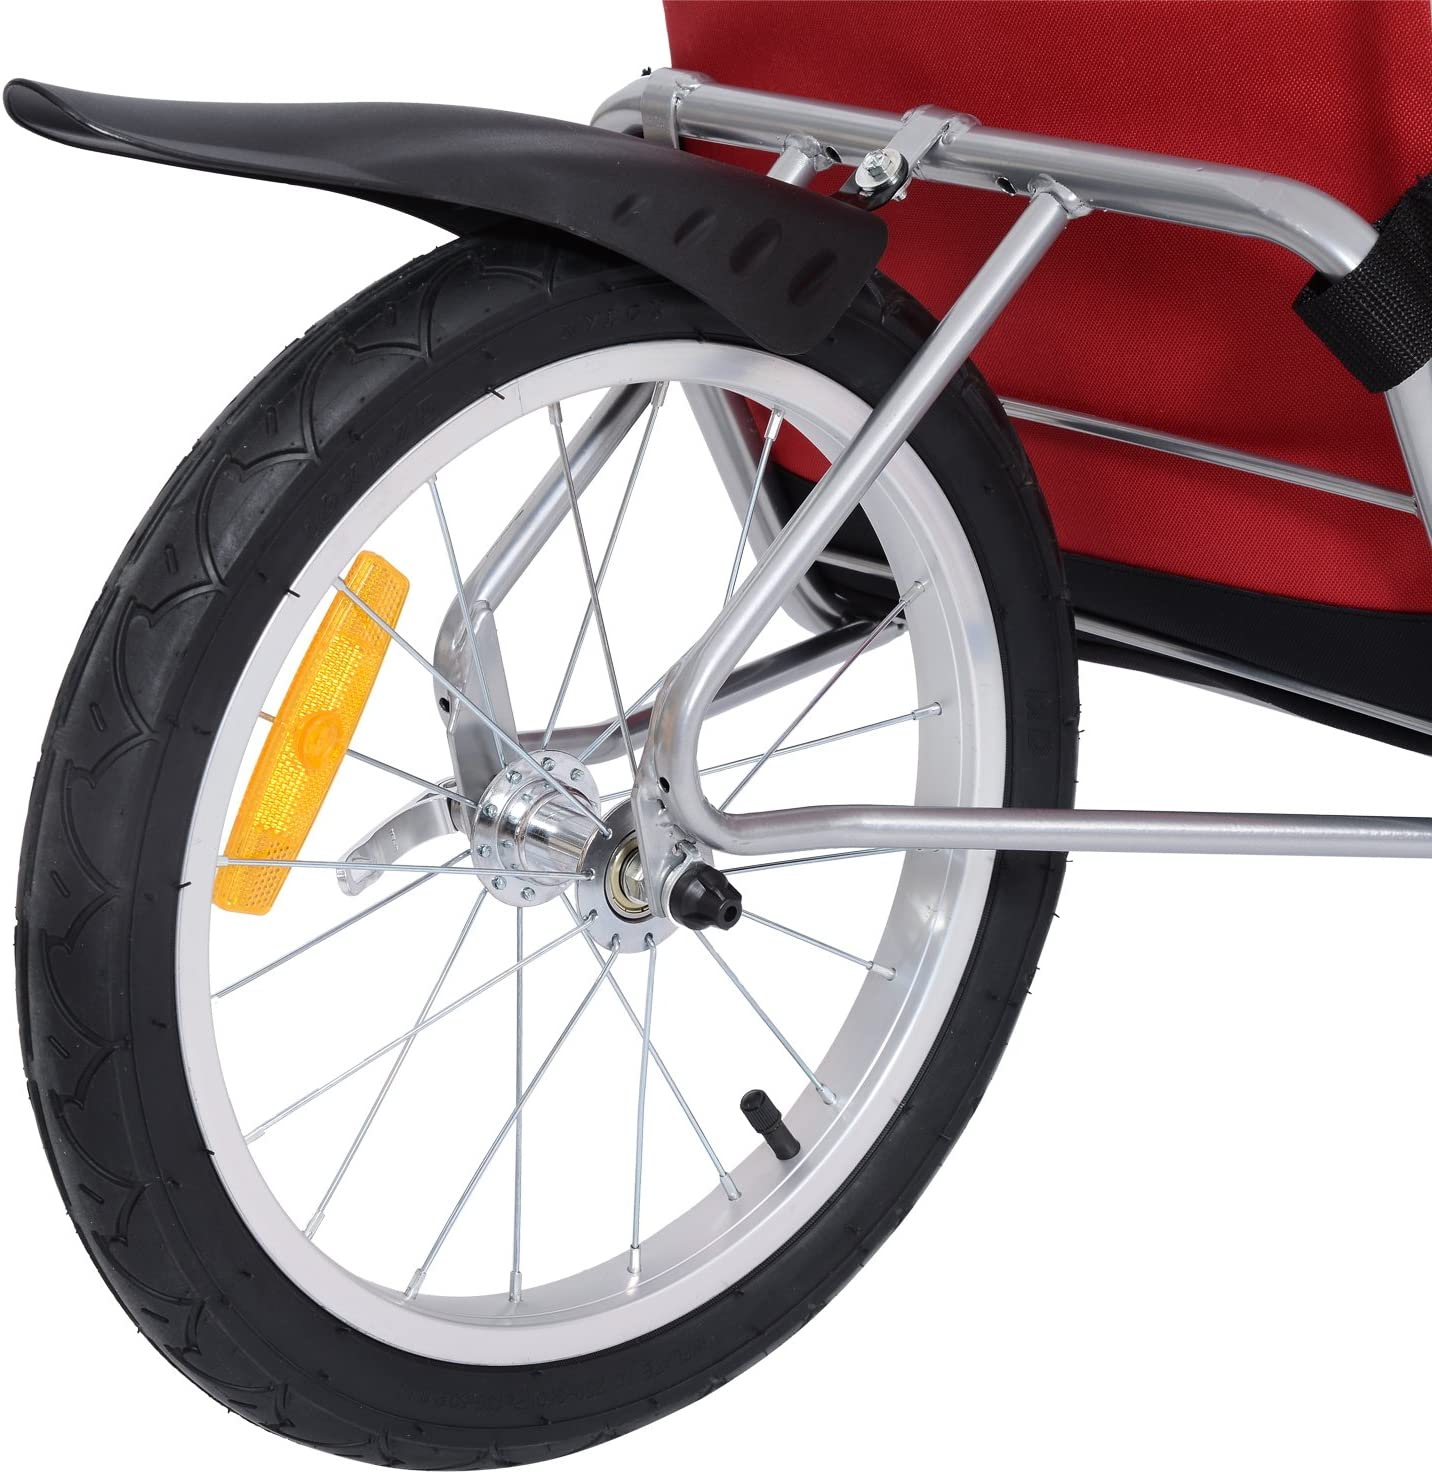 Black Platform Truck Folding Hand Trolley Wheels with Brakes Up to 100 kg Relaxdays 10029574 Pack of 1 Extendable /& Height-Adjustable